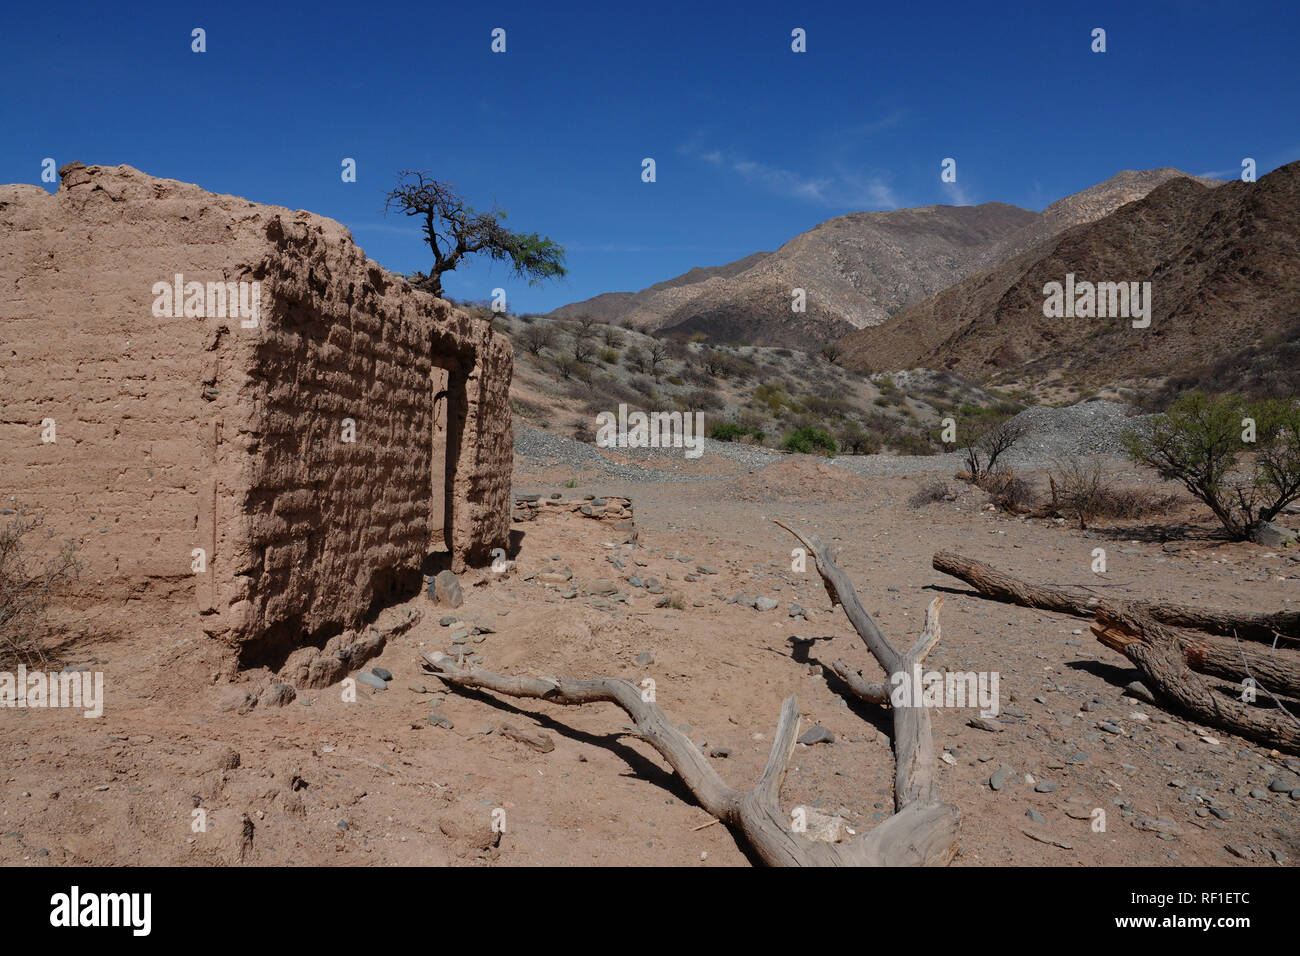 Abandoned adobe dwelling on the RN40 road between Cachi and Cafayate made famous by Che Guevara in his Motorcycle Diaries. - Stock Image